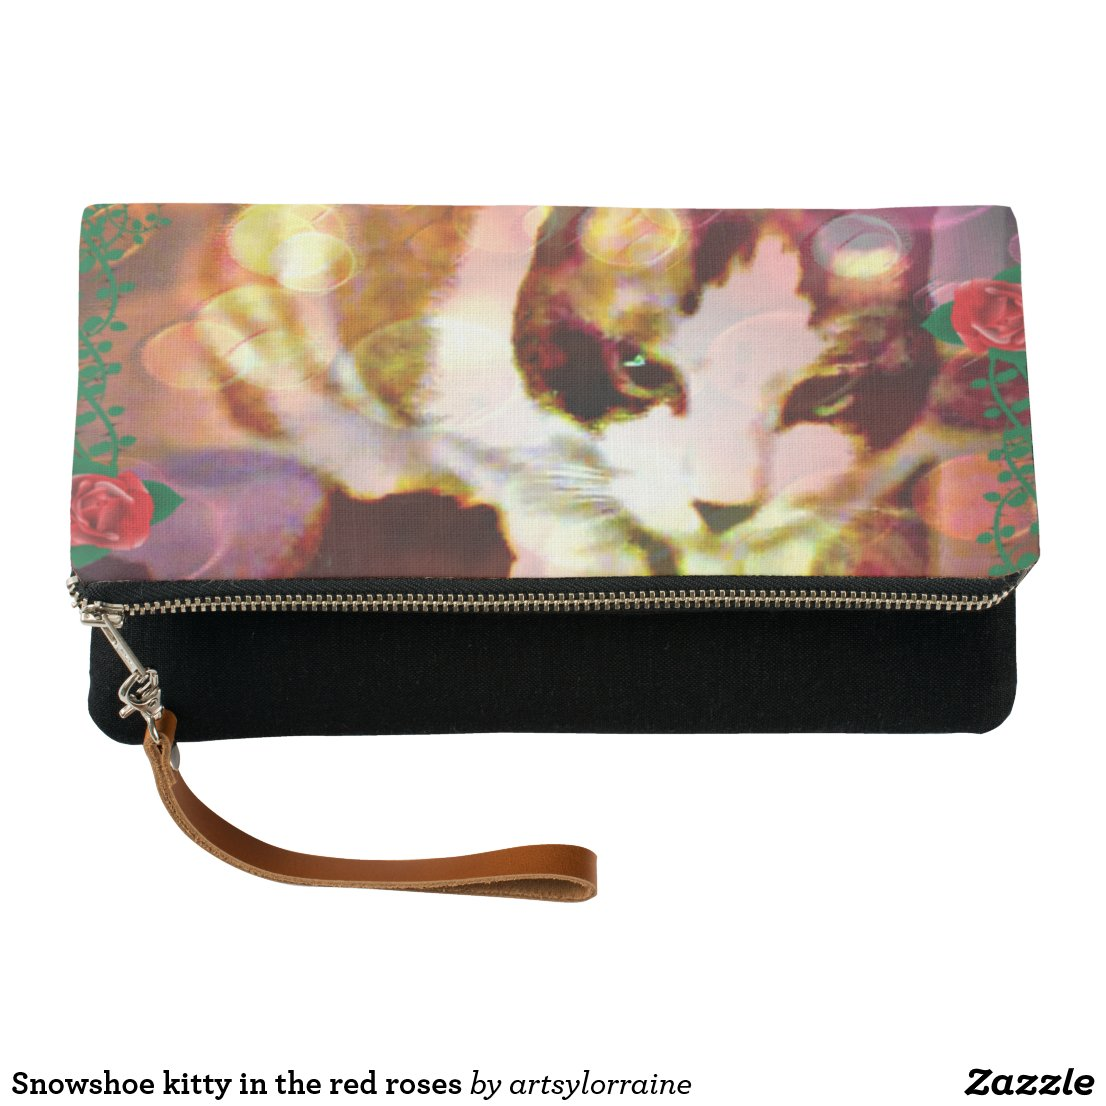 Snowshoe kitty in the red roses clutch